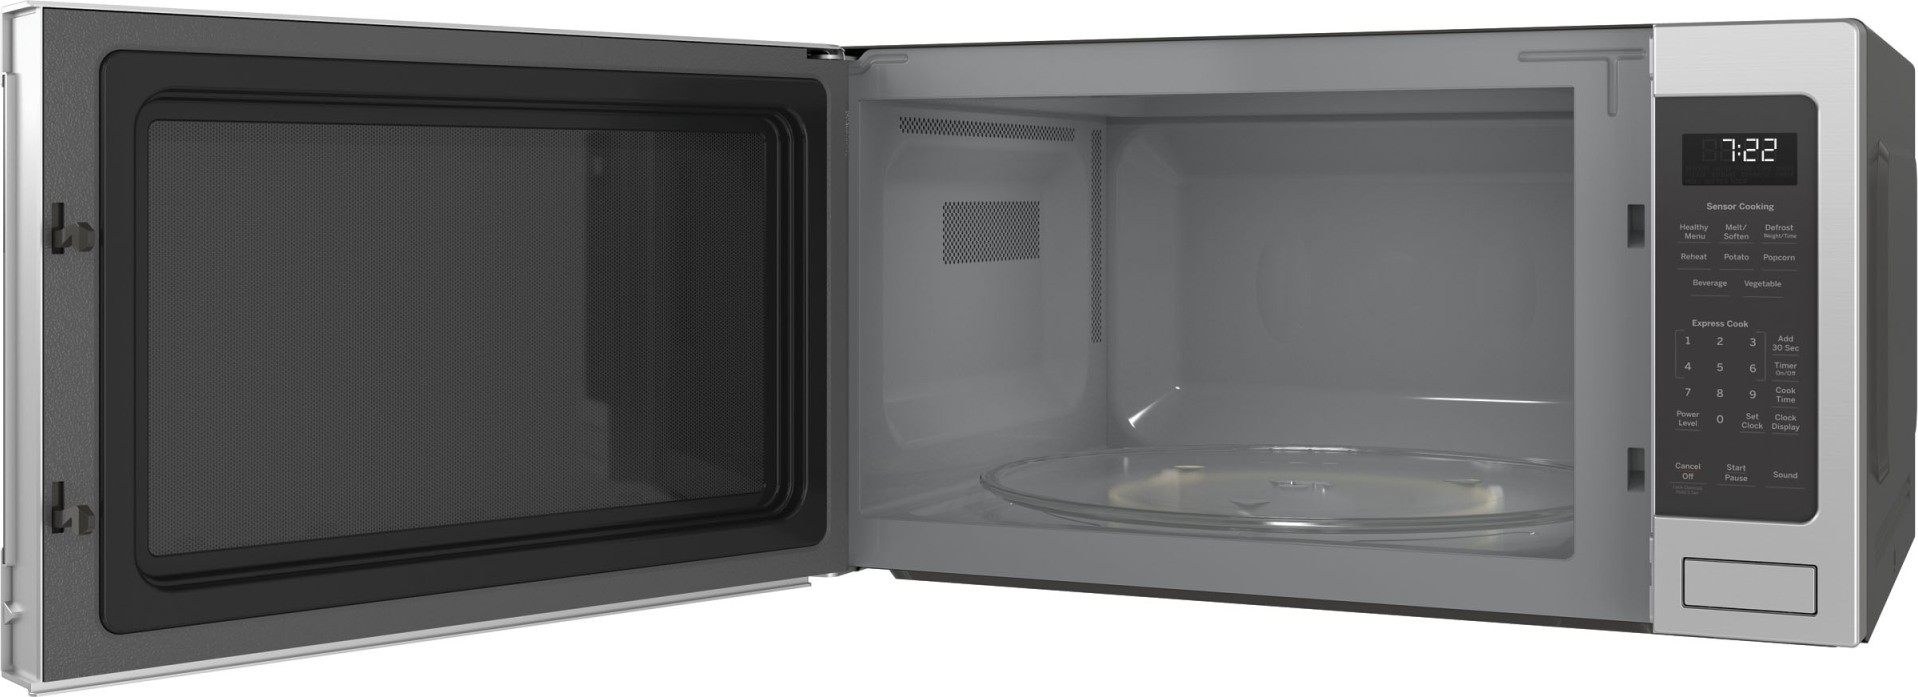 PES7227SLSS GE Profile 24 Countertop 22 Cu Ft 1100 W Microwave Stainless Steel